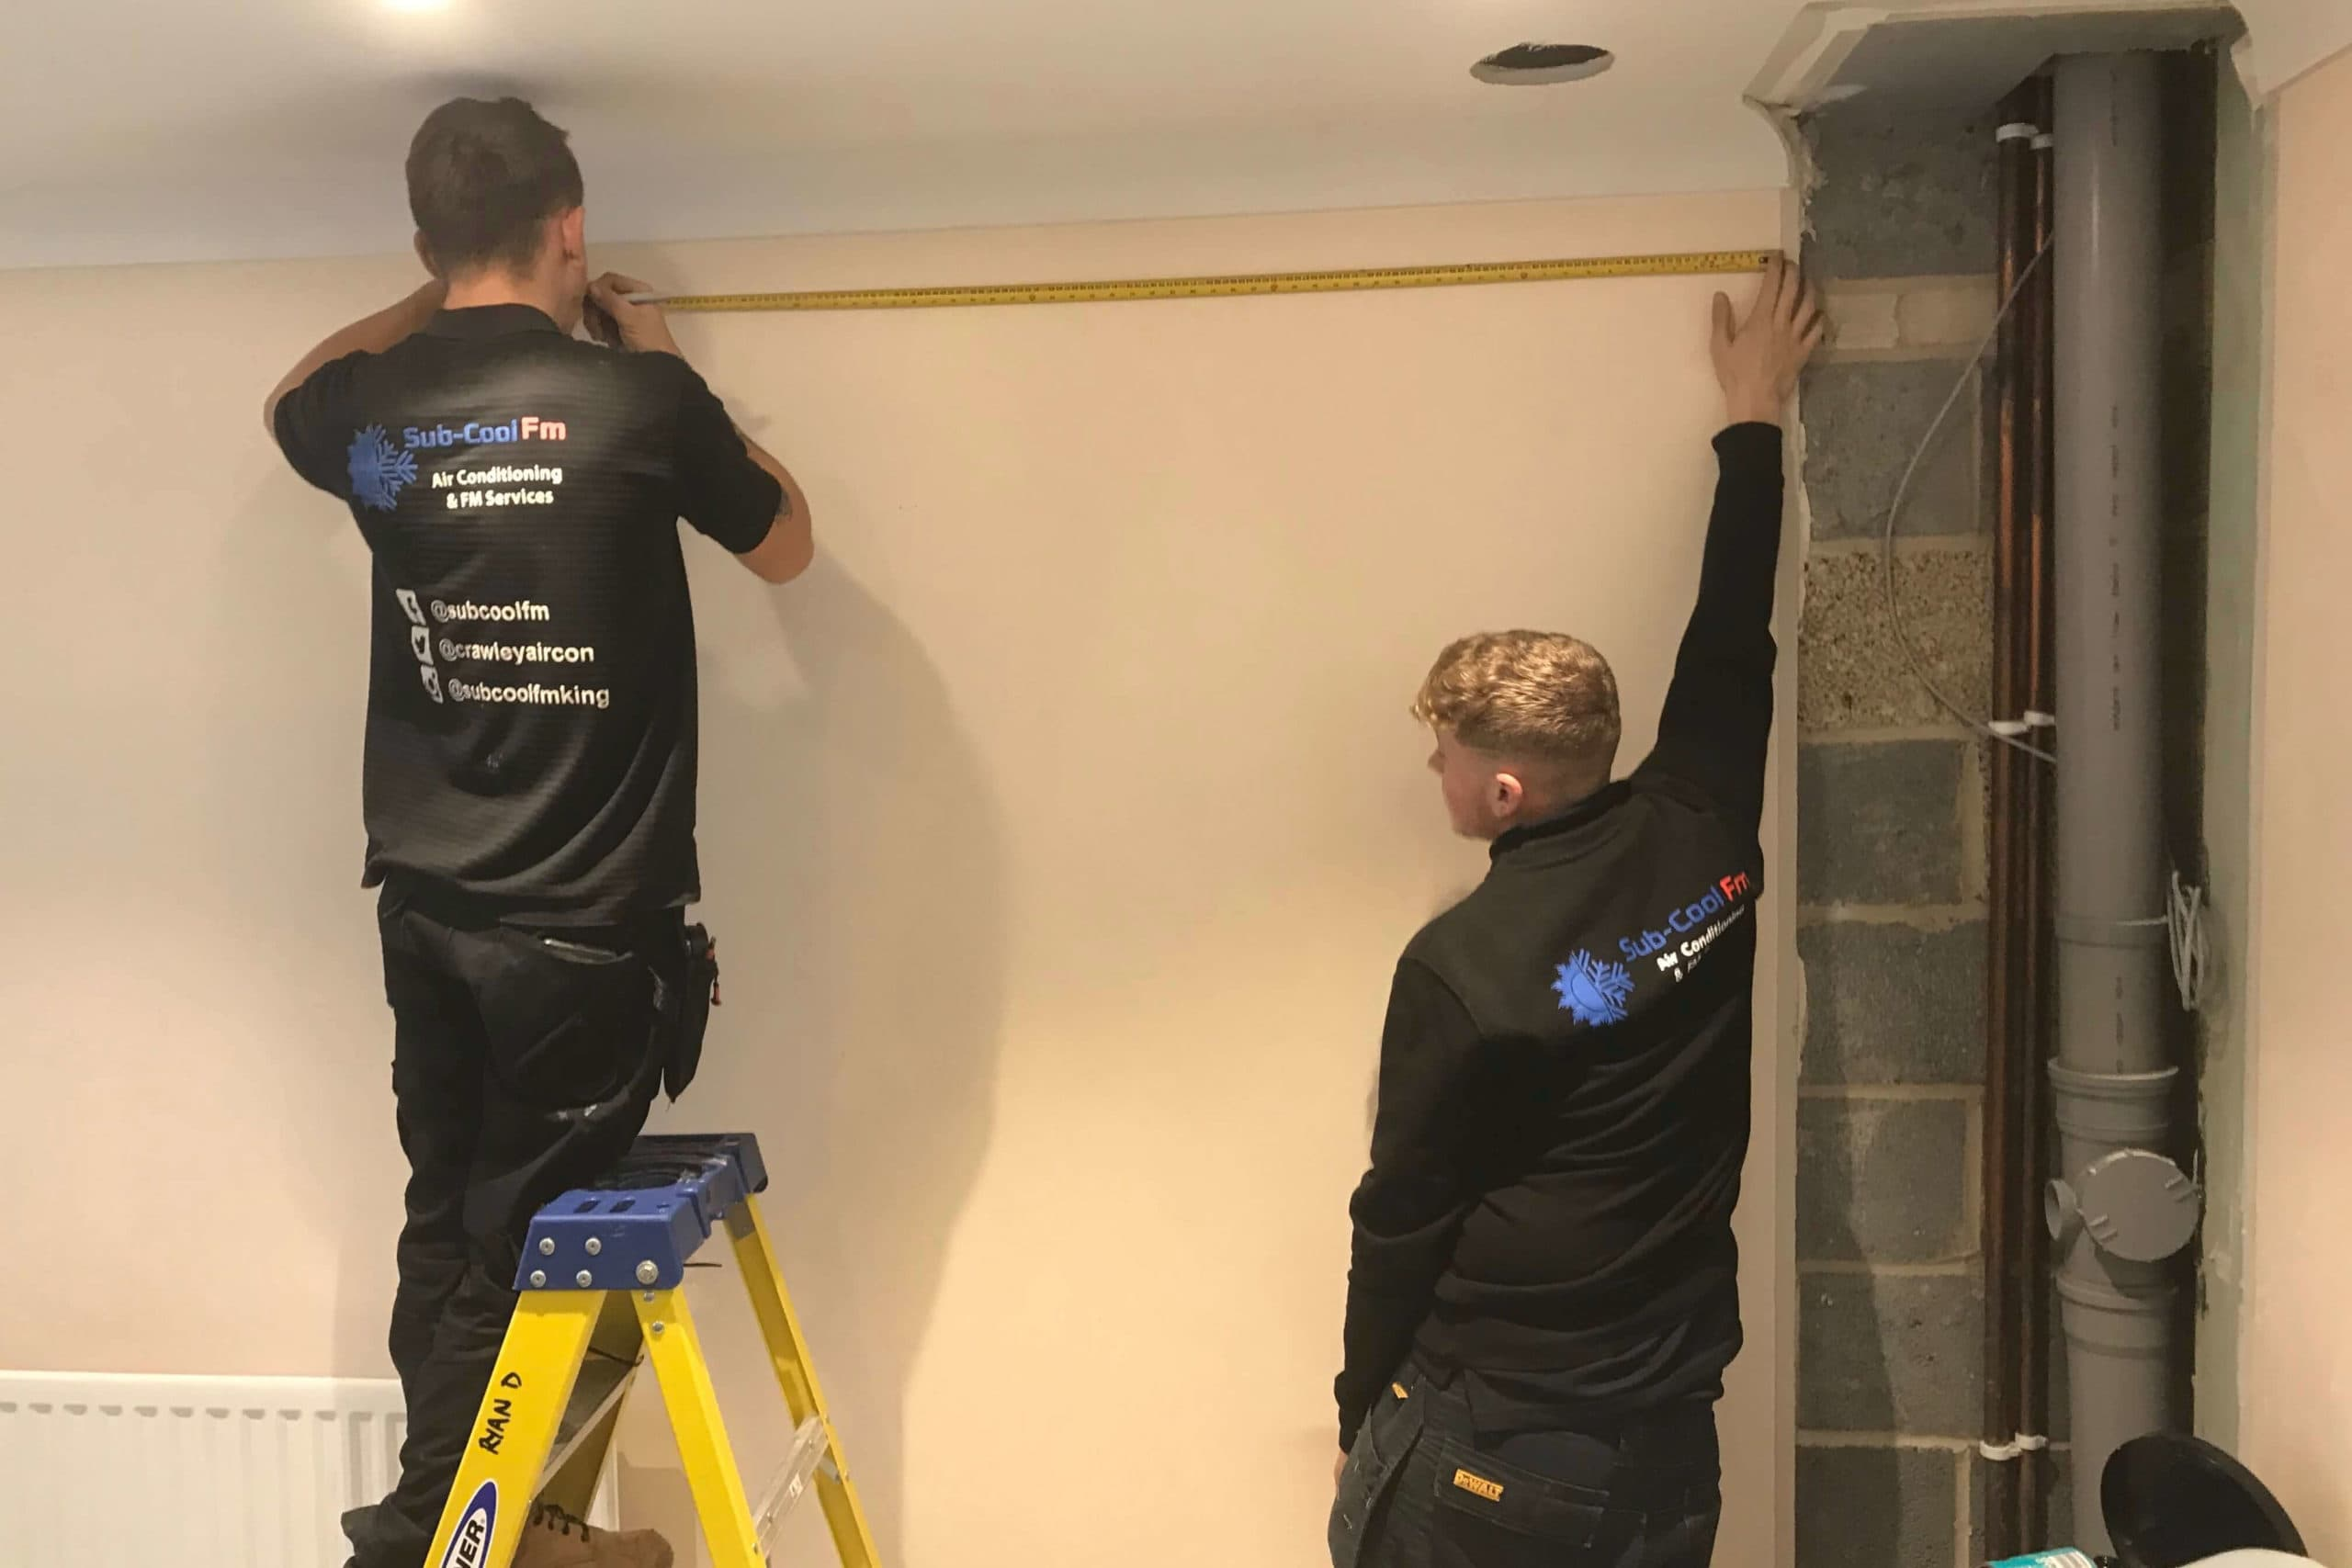 2 SuCoolFm engineers measuring for air conditioning installation